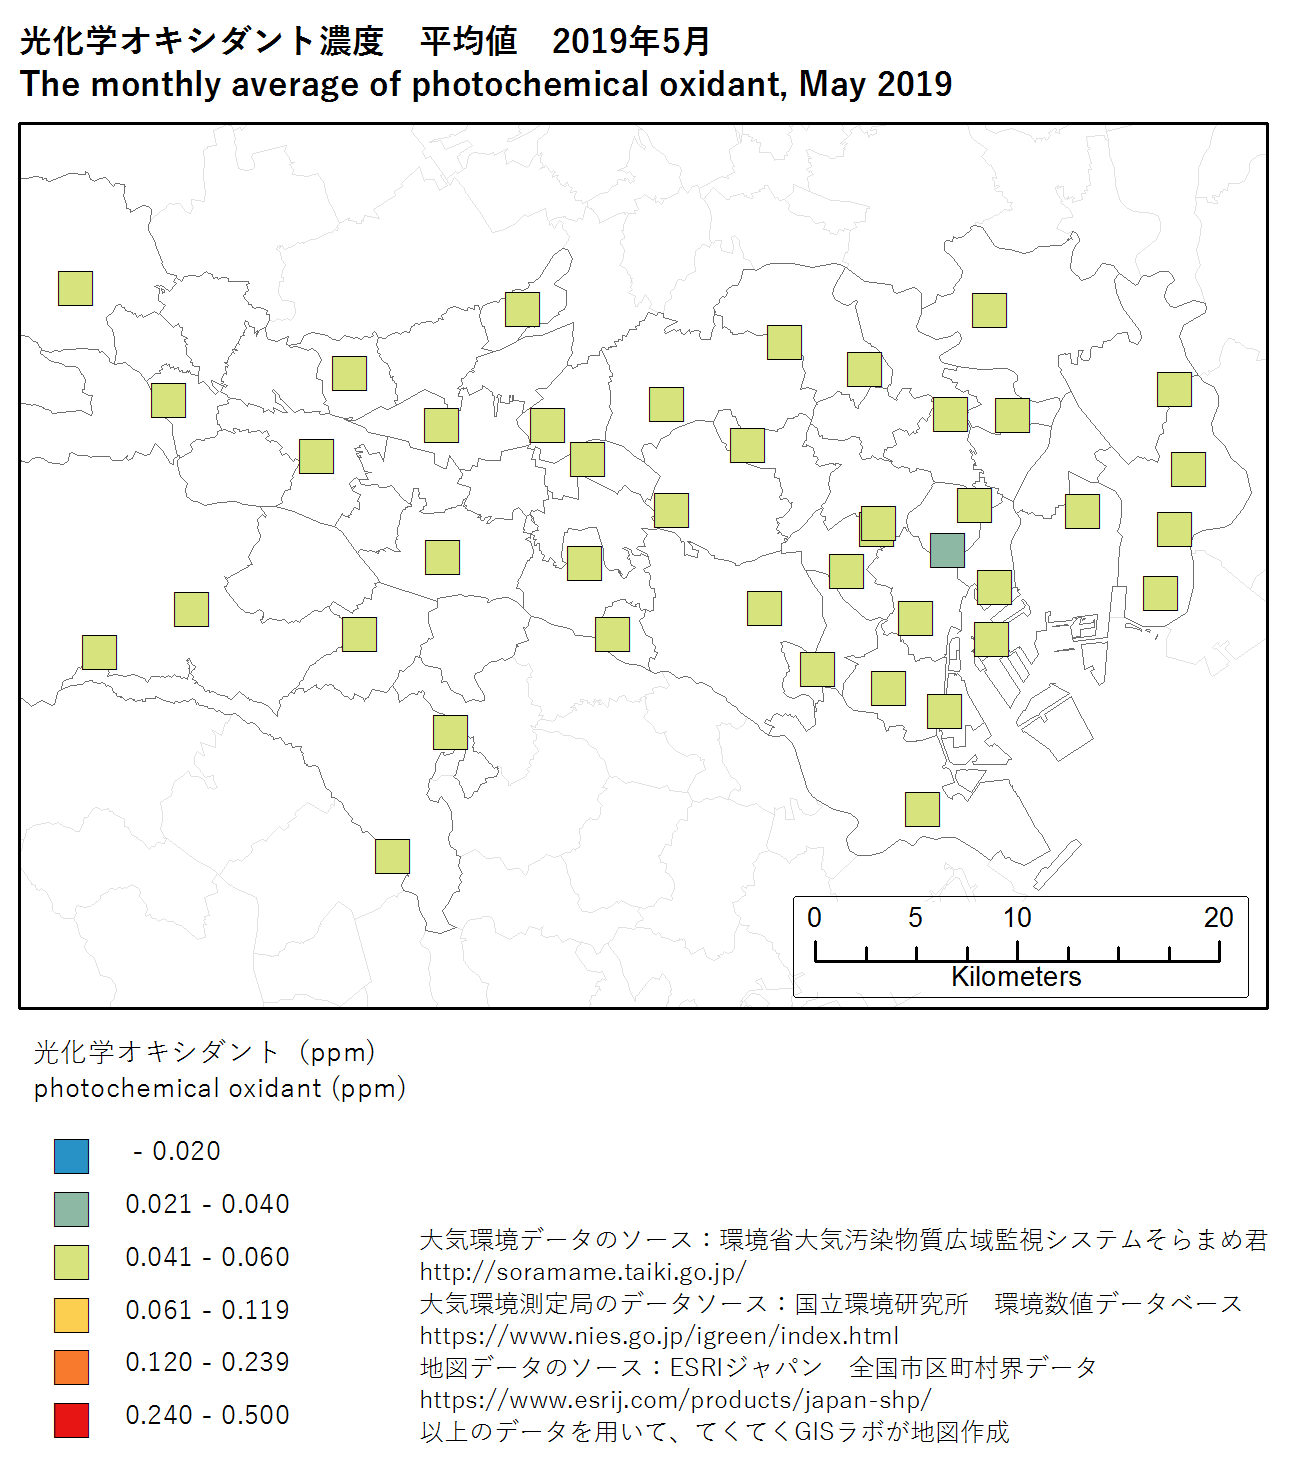 photochromic oxidant map (ave) of Tokyo, May 2019